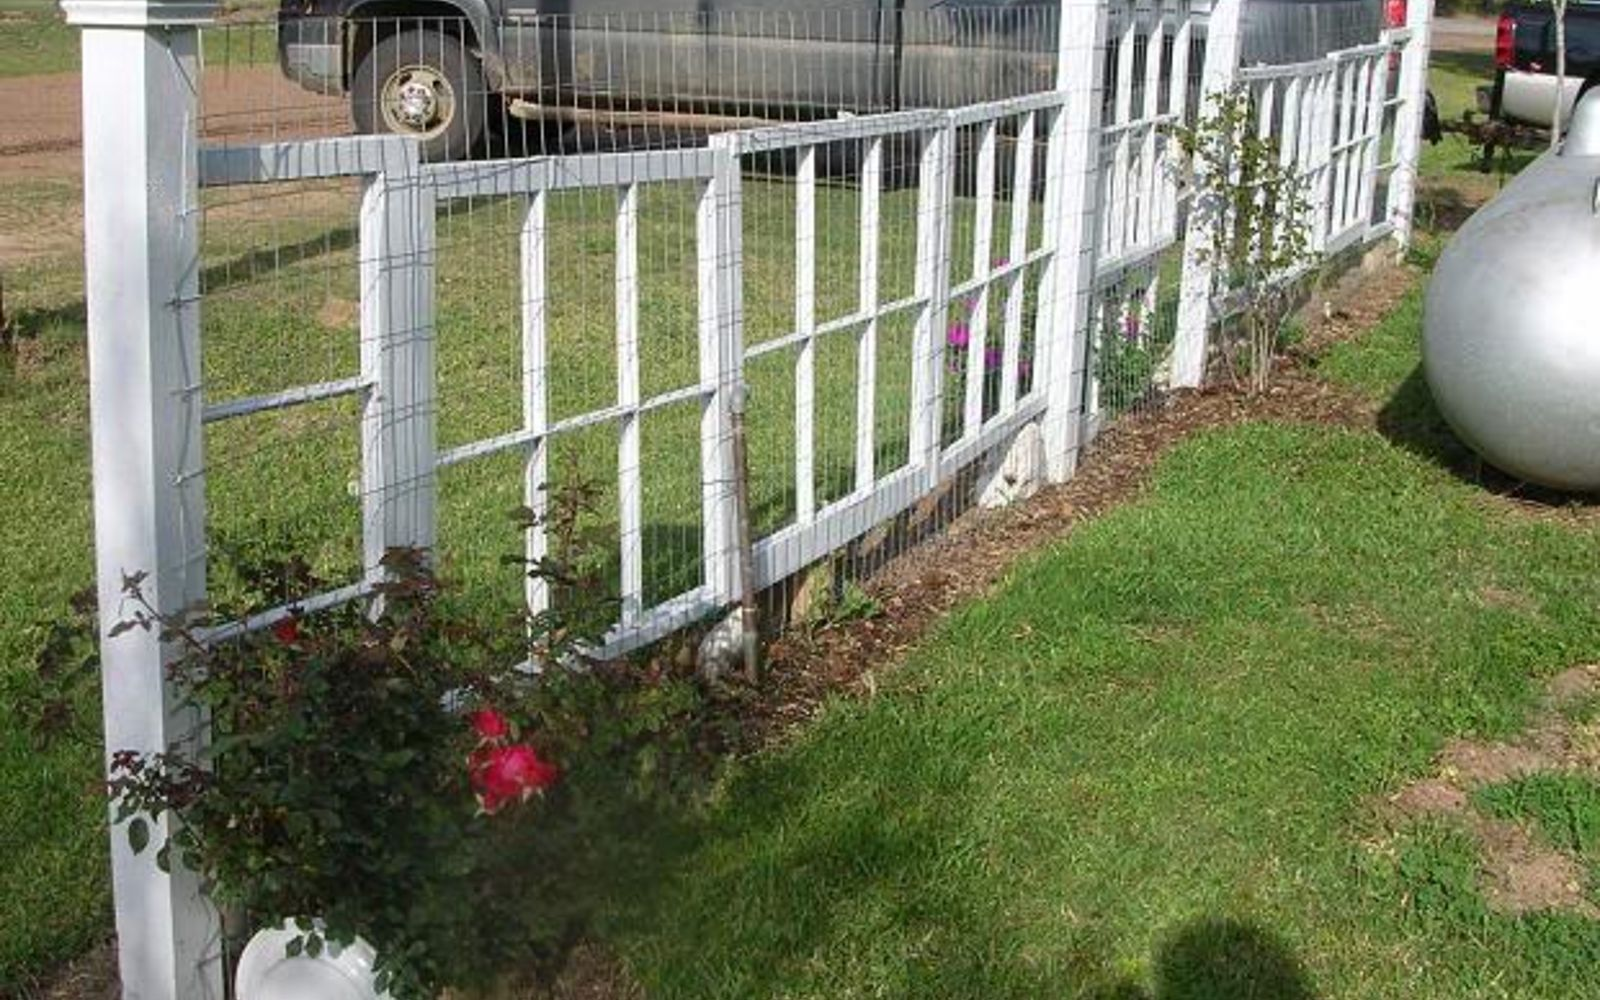 s 15 privacy fences that will turn your yard into a secluded oasis, curb appeal, fences, String together a row of extra windows